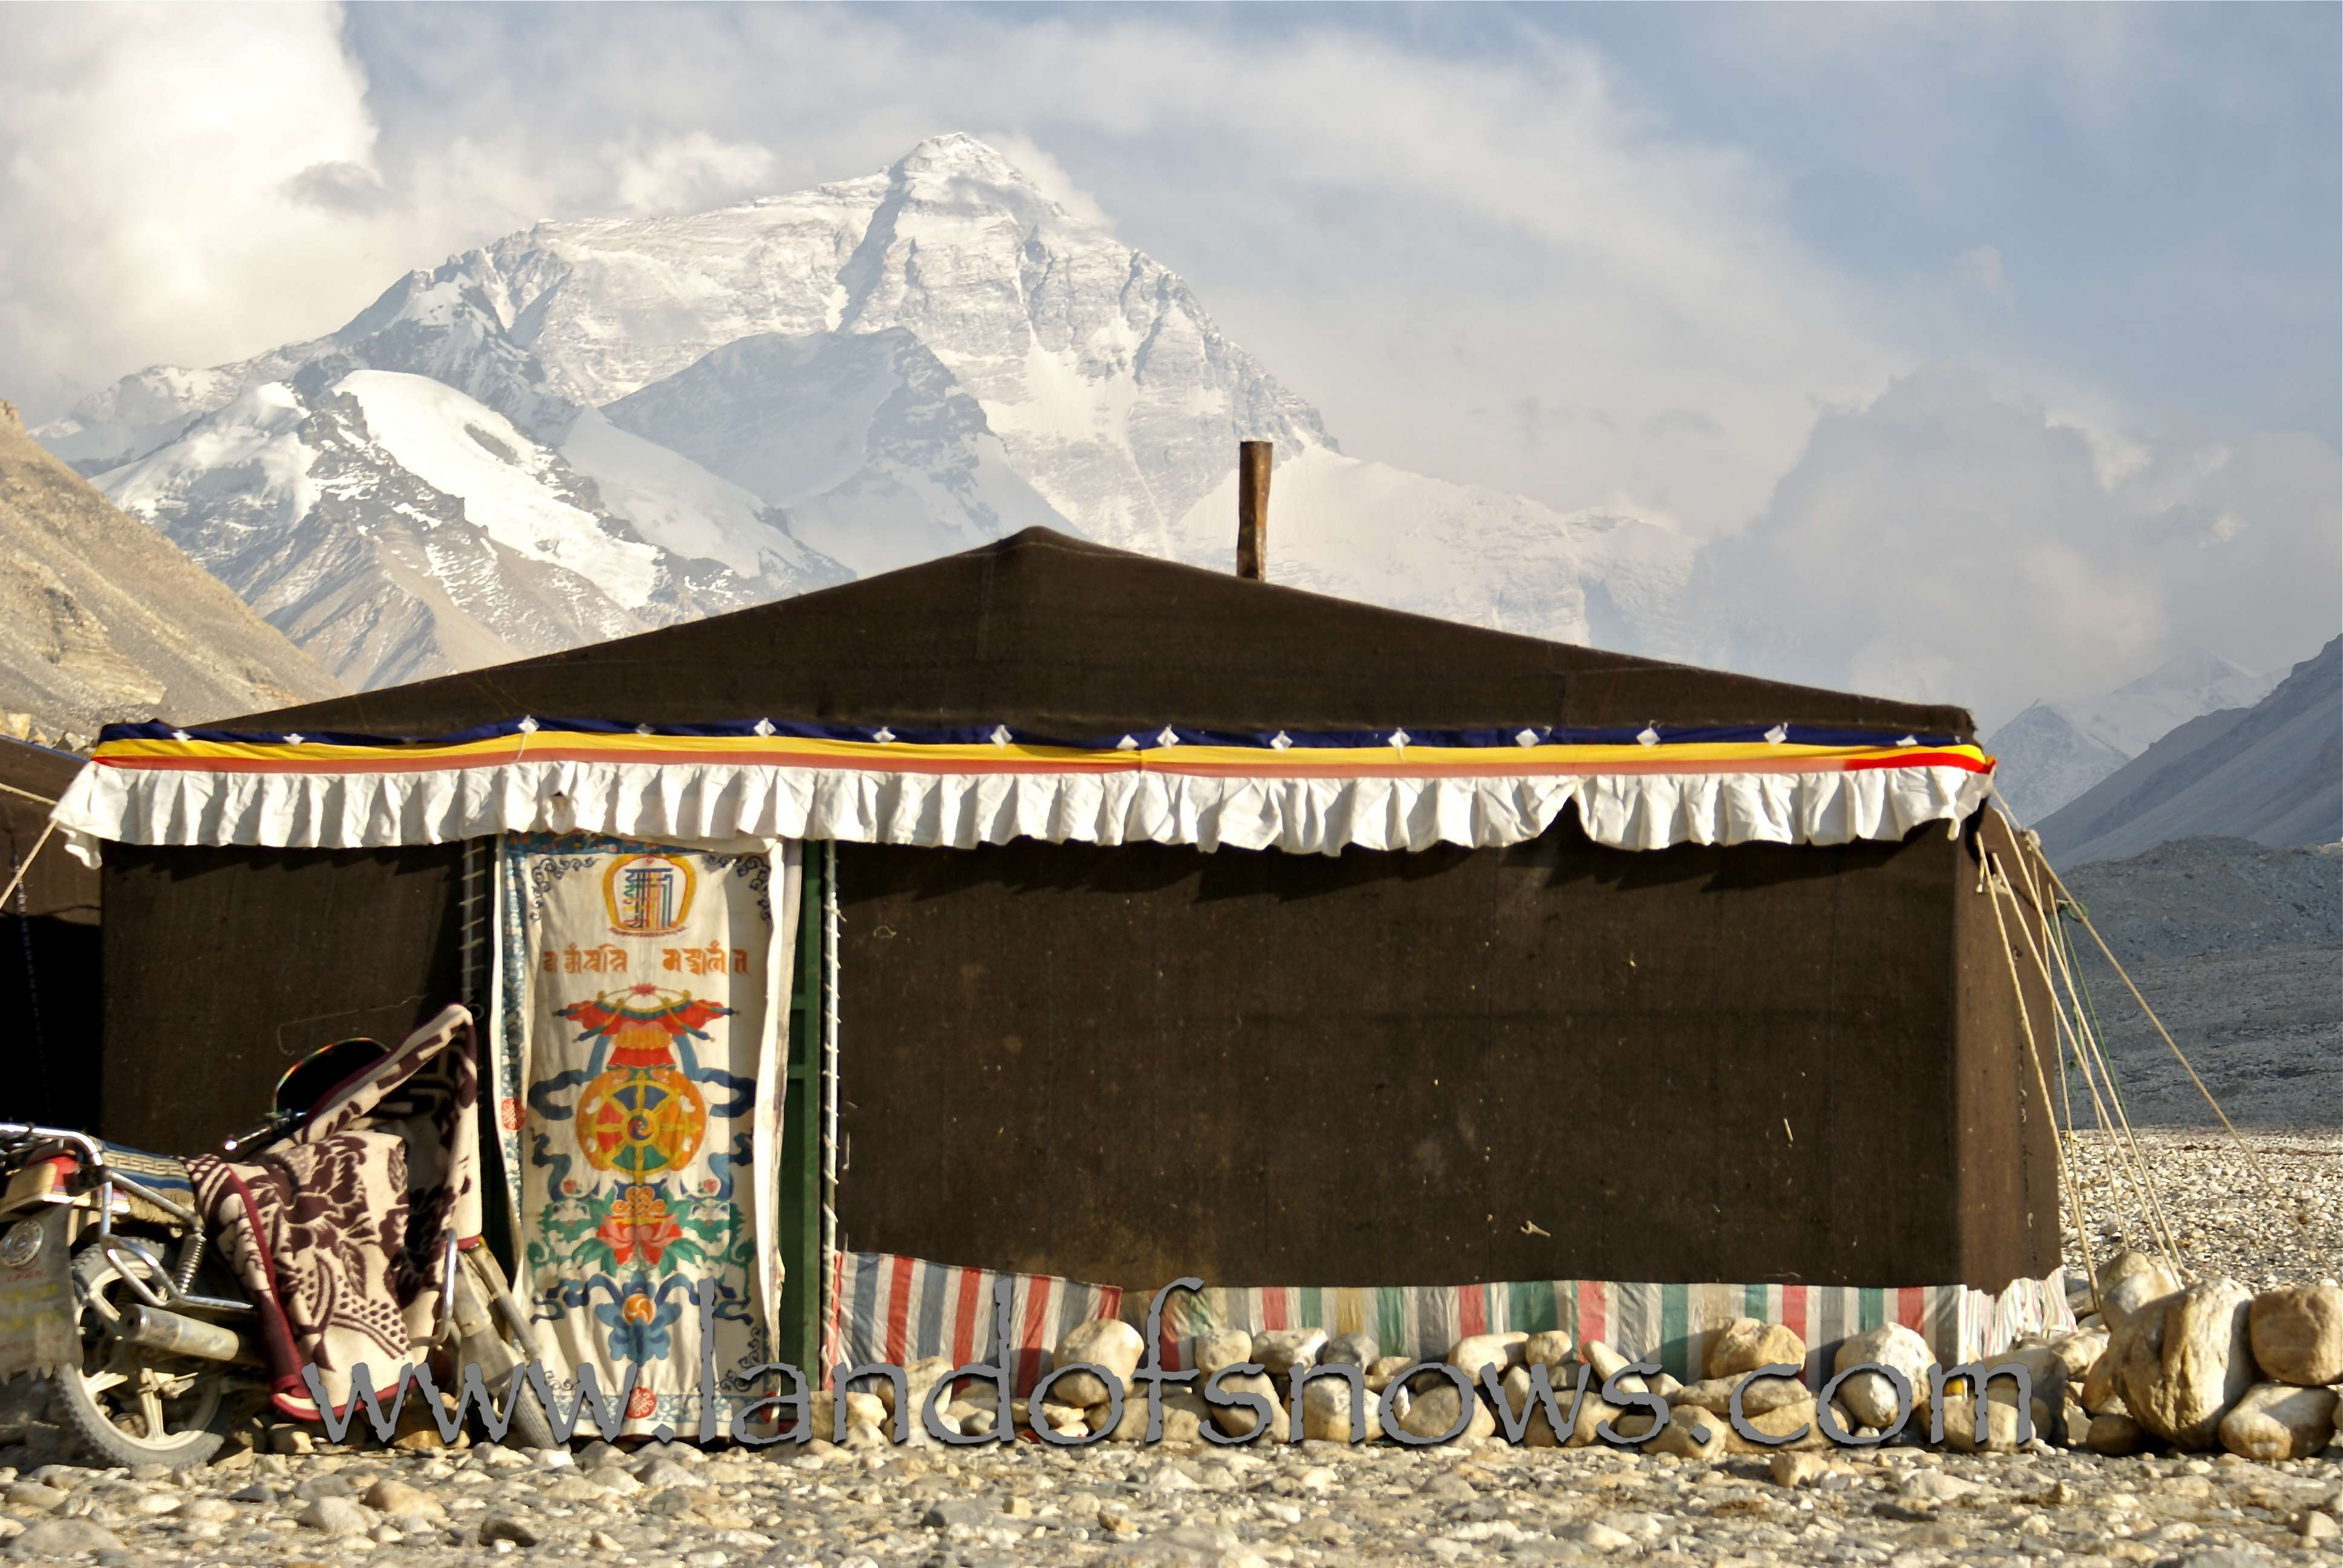 DSC02771wtmk & Tent Hotels at Everest Base Camp - The Land of Snows